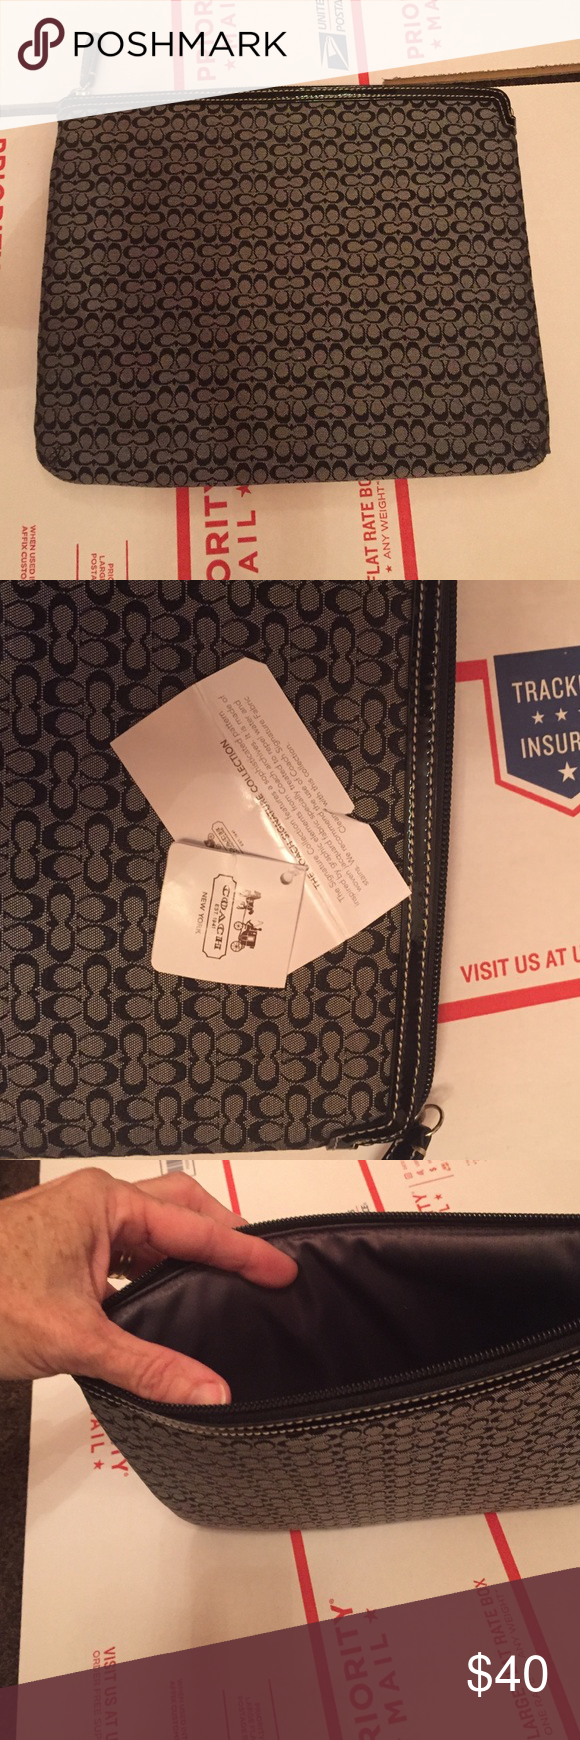 COACH IPAD CASE Perfect for back to school or office. Coach Bags Cosmetic Bags & Cases